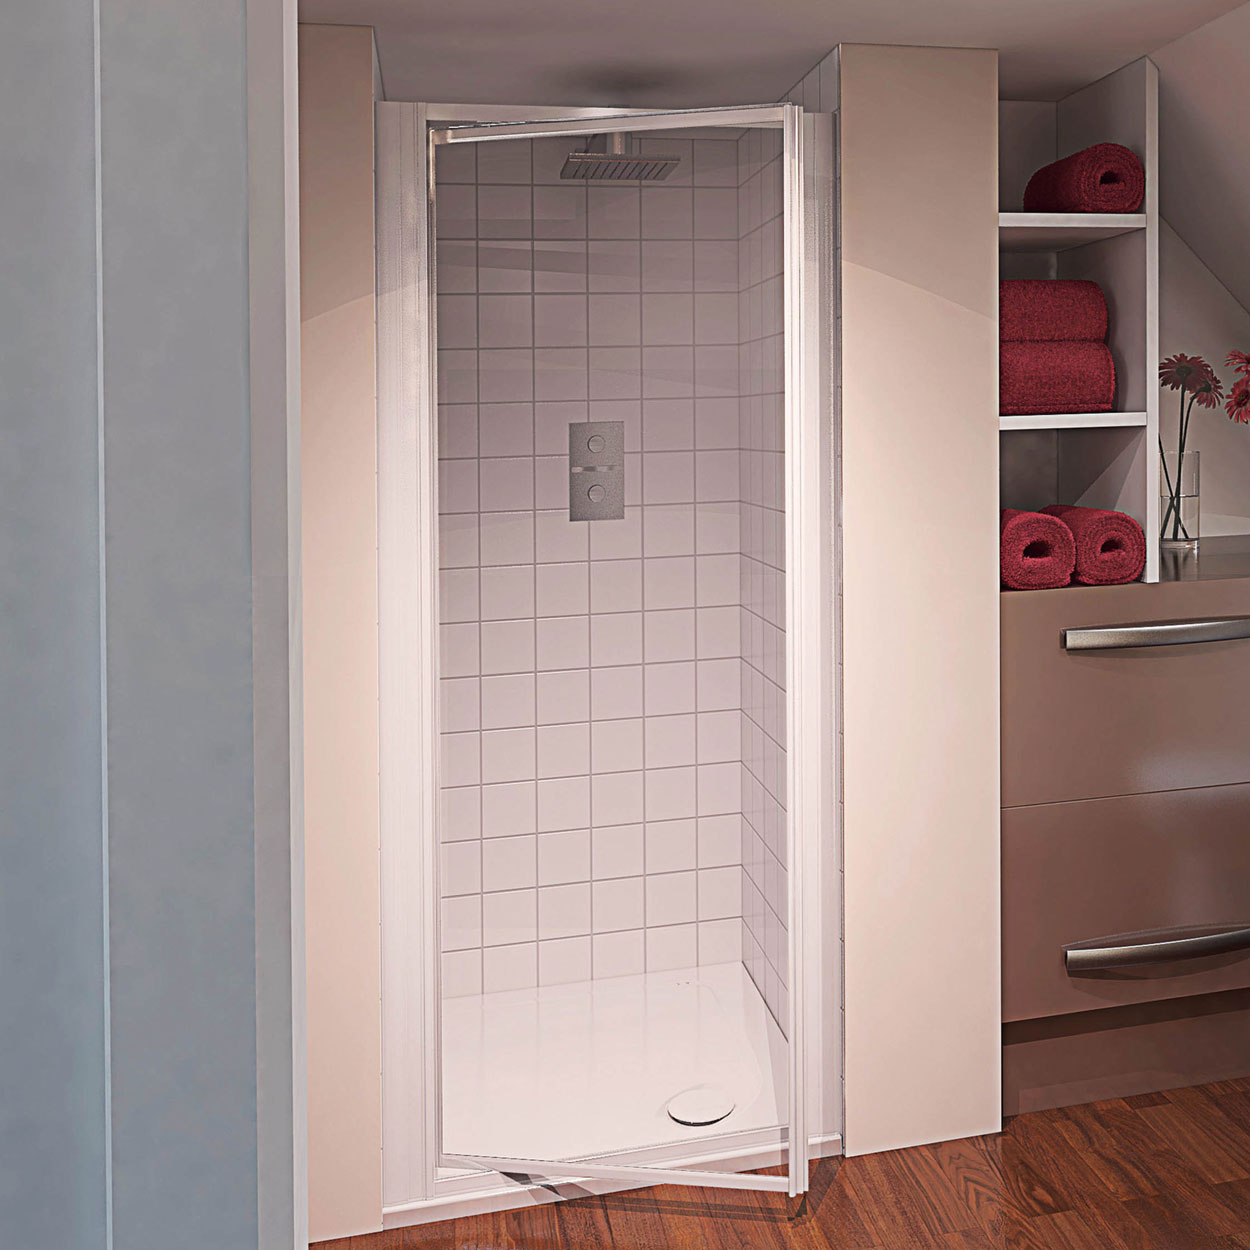 Aqualux AQUA 4 Pivot Shower Door 760mm Wide White Frame - Clear Glass-0